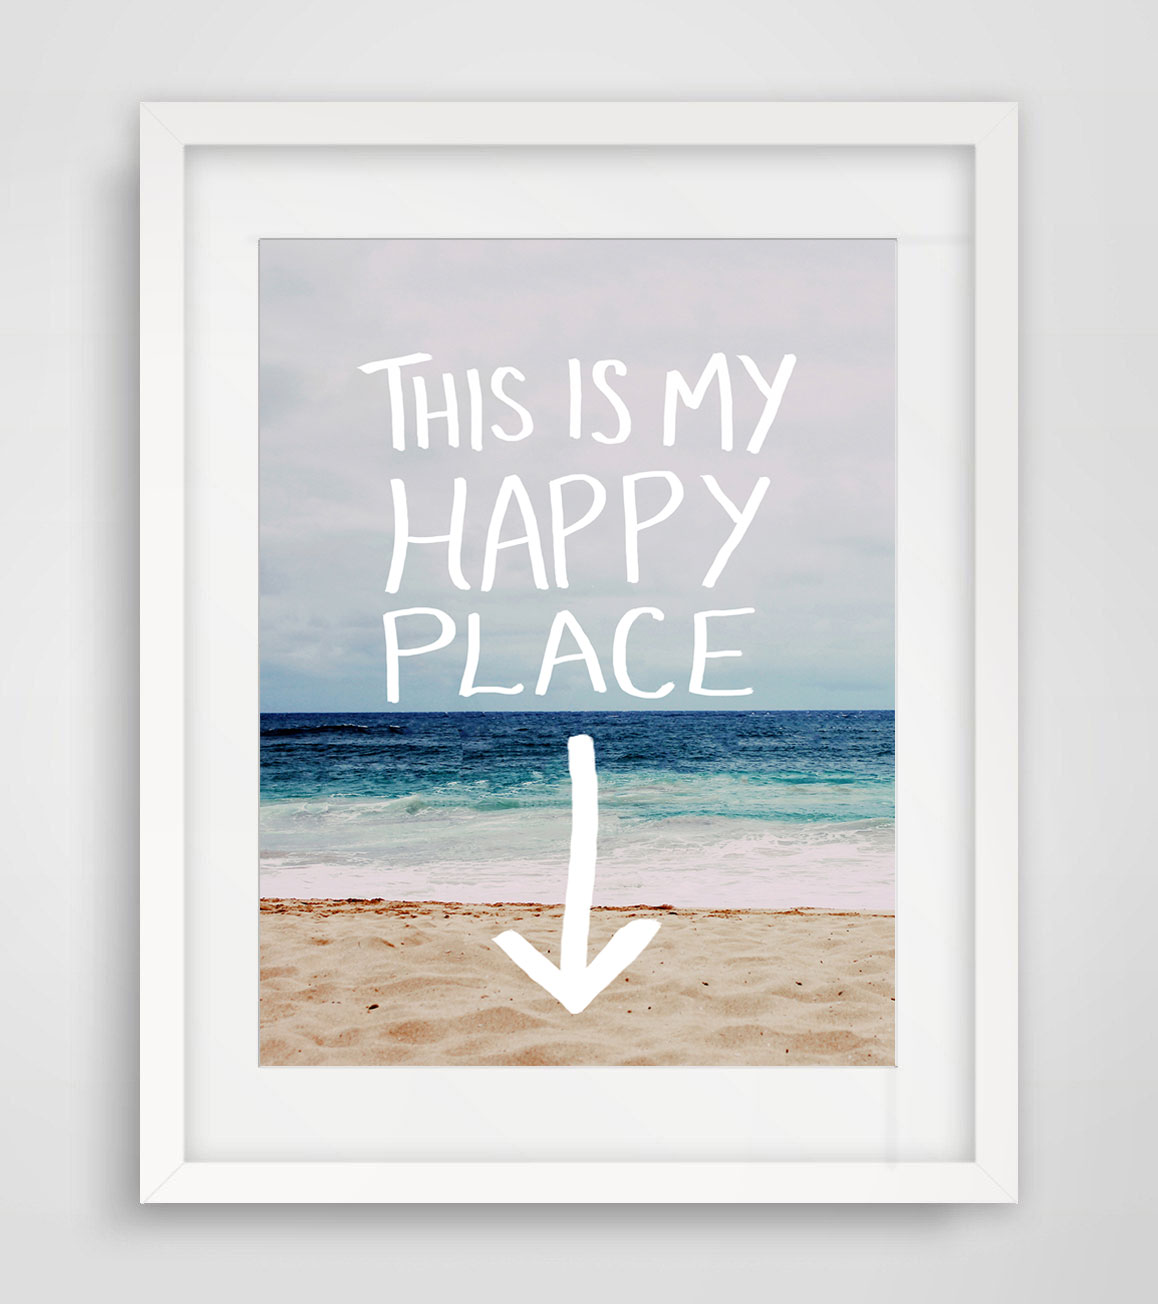 US $5.99 |This Is My Happy Place Quotes Wall Art Beach Decor Landscape Sea  Wall Art Print Love Wedding Art Gift AP064-in Painting & Calligraphy from  ...